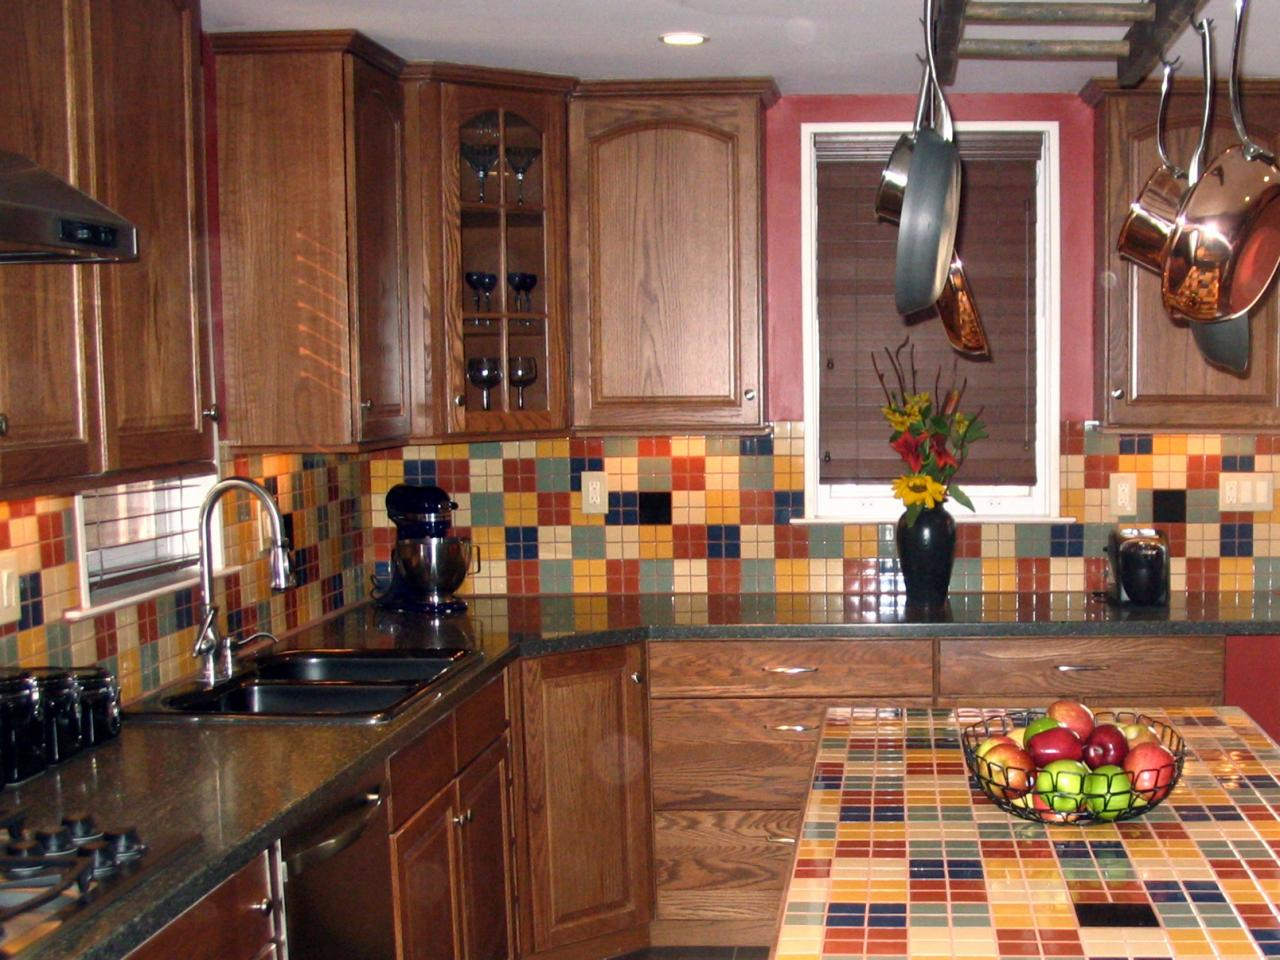 Kitchen backsplash tile ideas hgtv for Kitchen tiles pictures